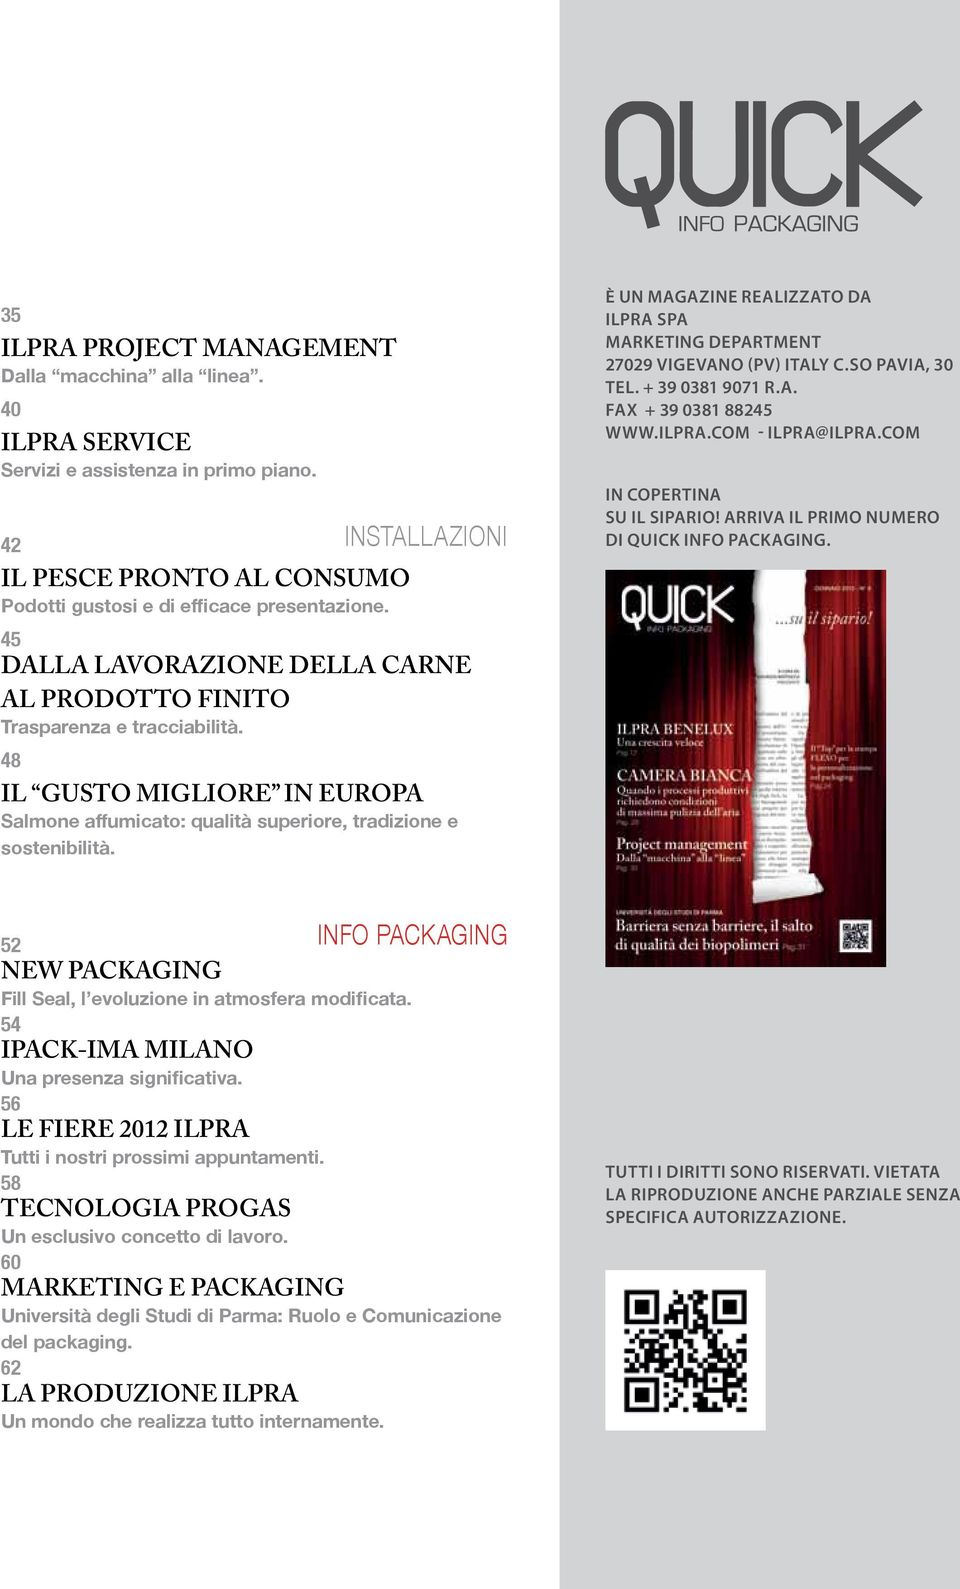 è un magazine realizzato da ILPRA SpA marketing department 27029 Vigevano (PV) Italy C.so Pavia, 30 Tel. + 39 0381 9071 r.a. FAX + 39 0381 88245 www.ilpra.com - ILPRA@ilpra.